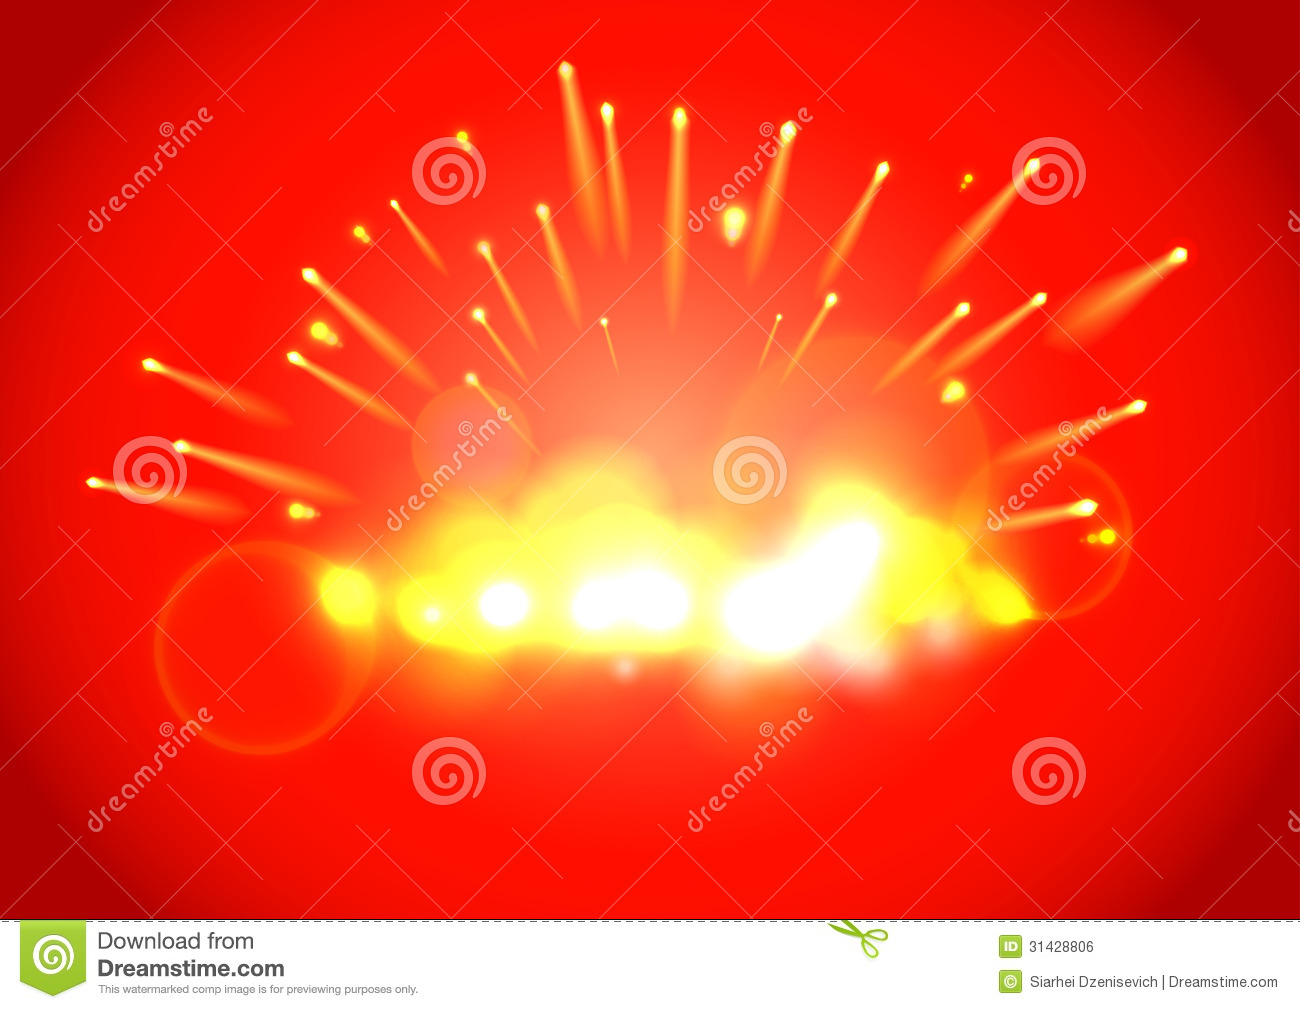 Sparkling Background For Advertising Royalty Free Stock Image - Image ...